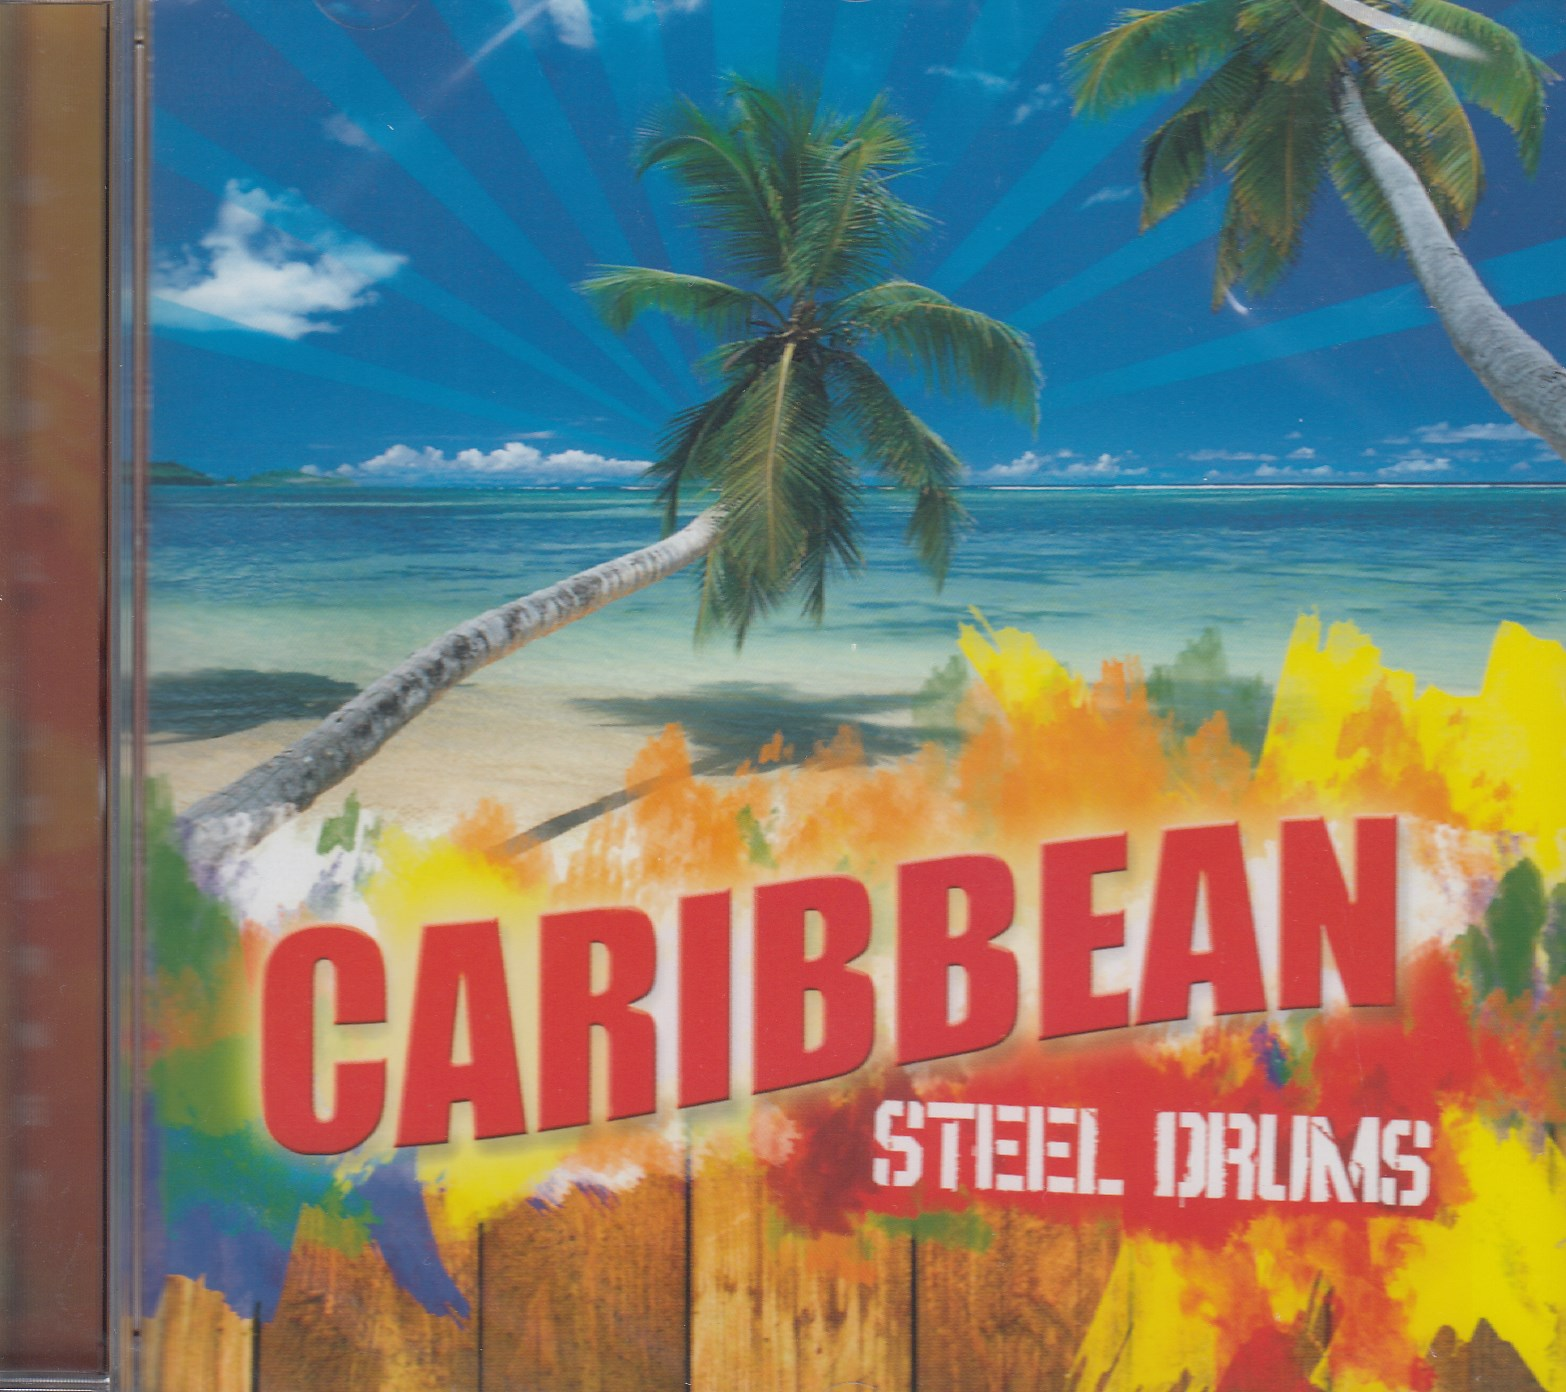 CD - Caribbean Steel Drums